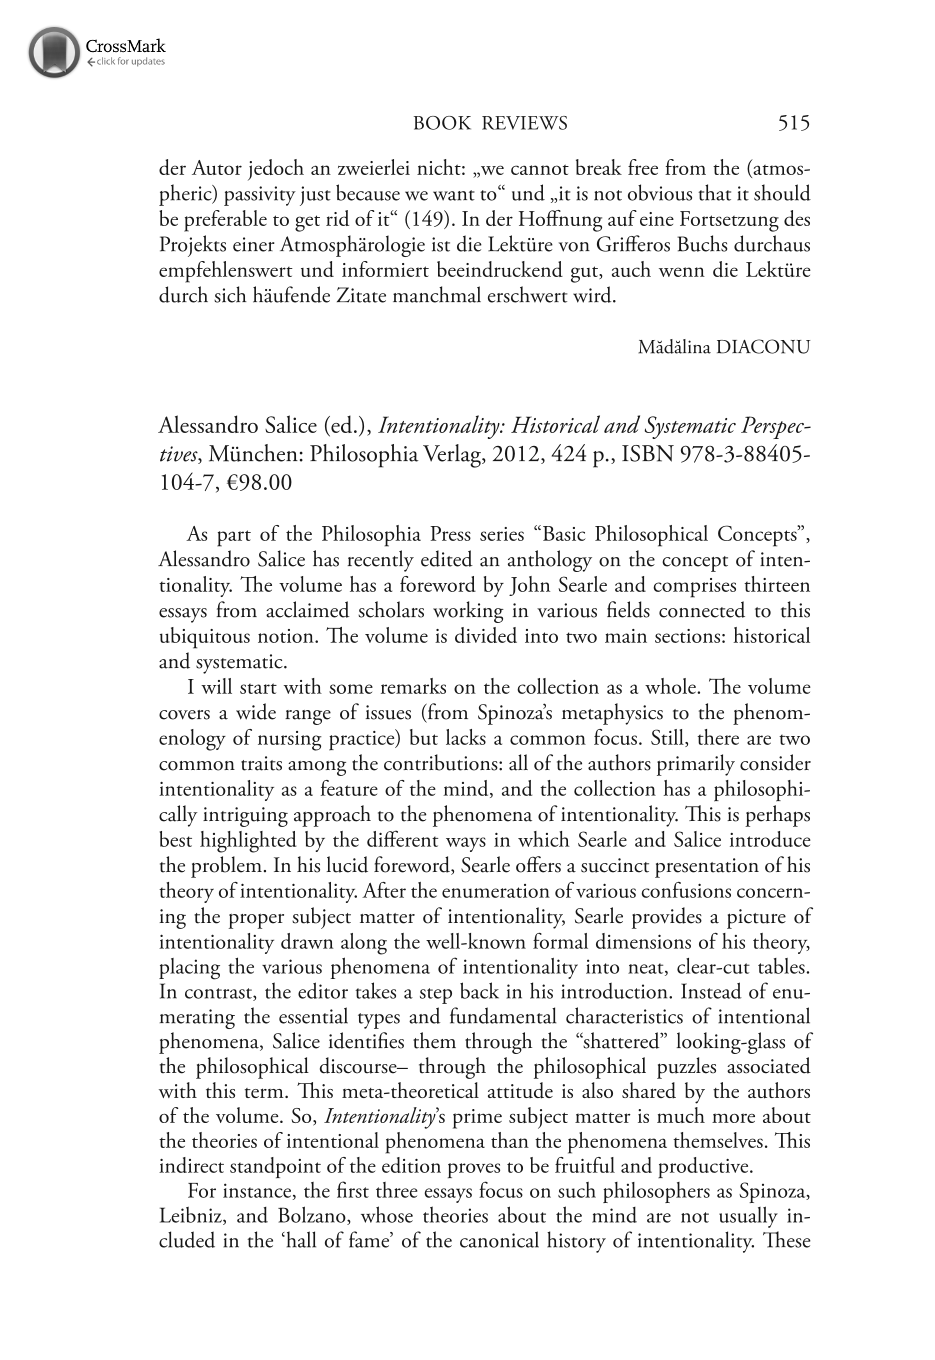 Alessandro Salice (ed.), Intentionality: Historical and Systematic ...